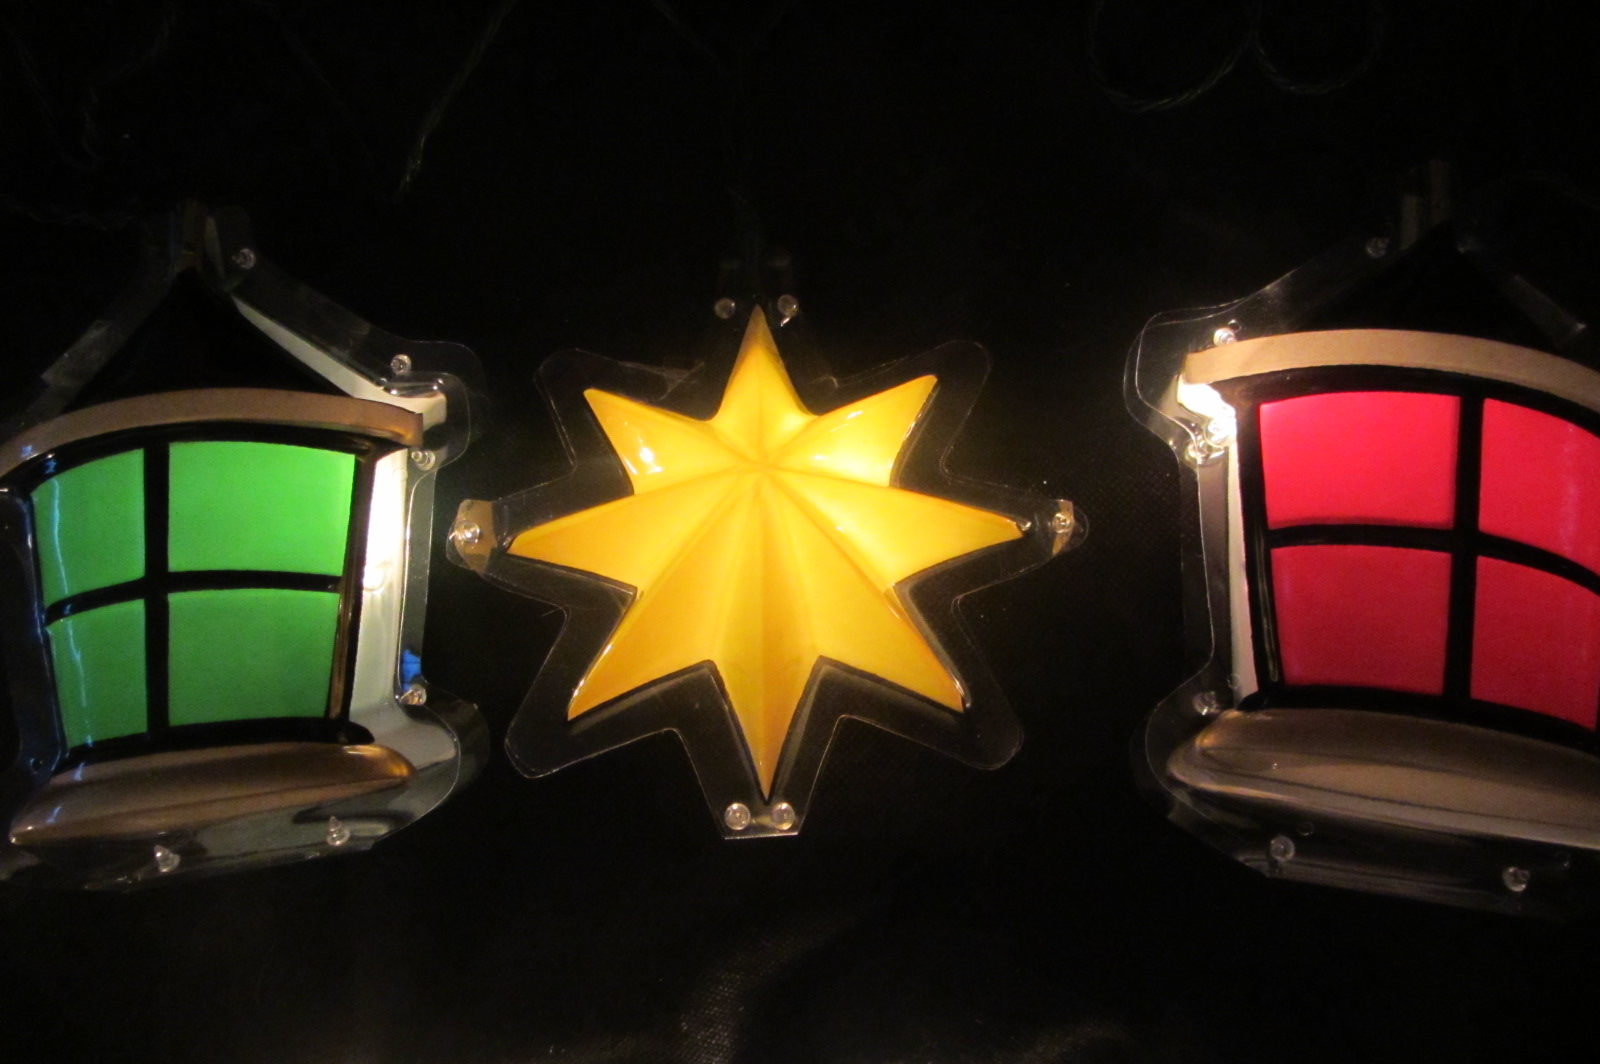 Wall Clips For Christmas Lights : 45ft OUTDOOR LANTERNS OR STARS CLIP ON CHRISTMAS LIGHTS WALL PORCH NEW C189 eBay